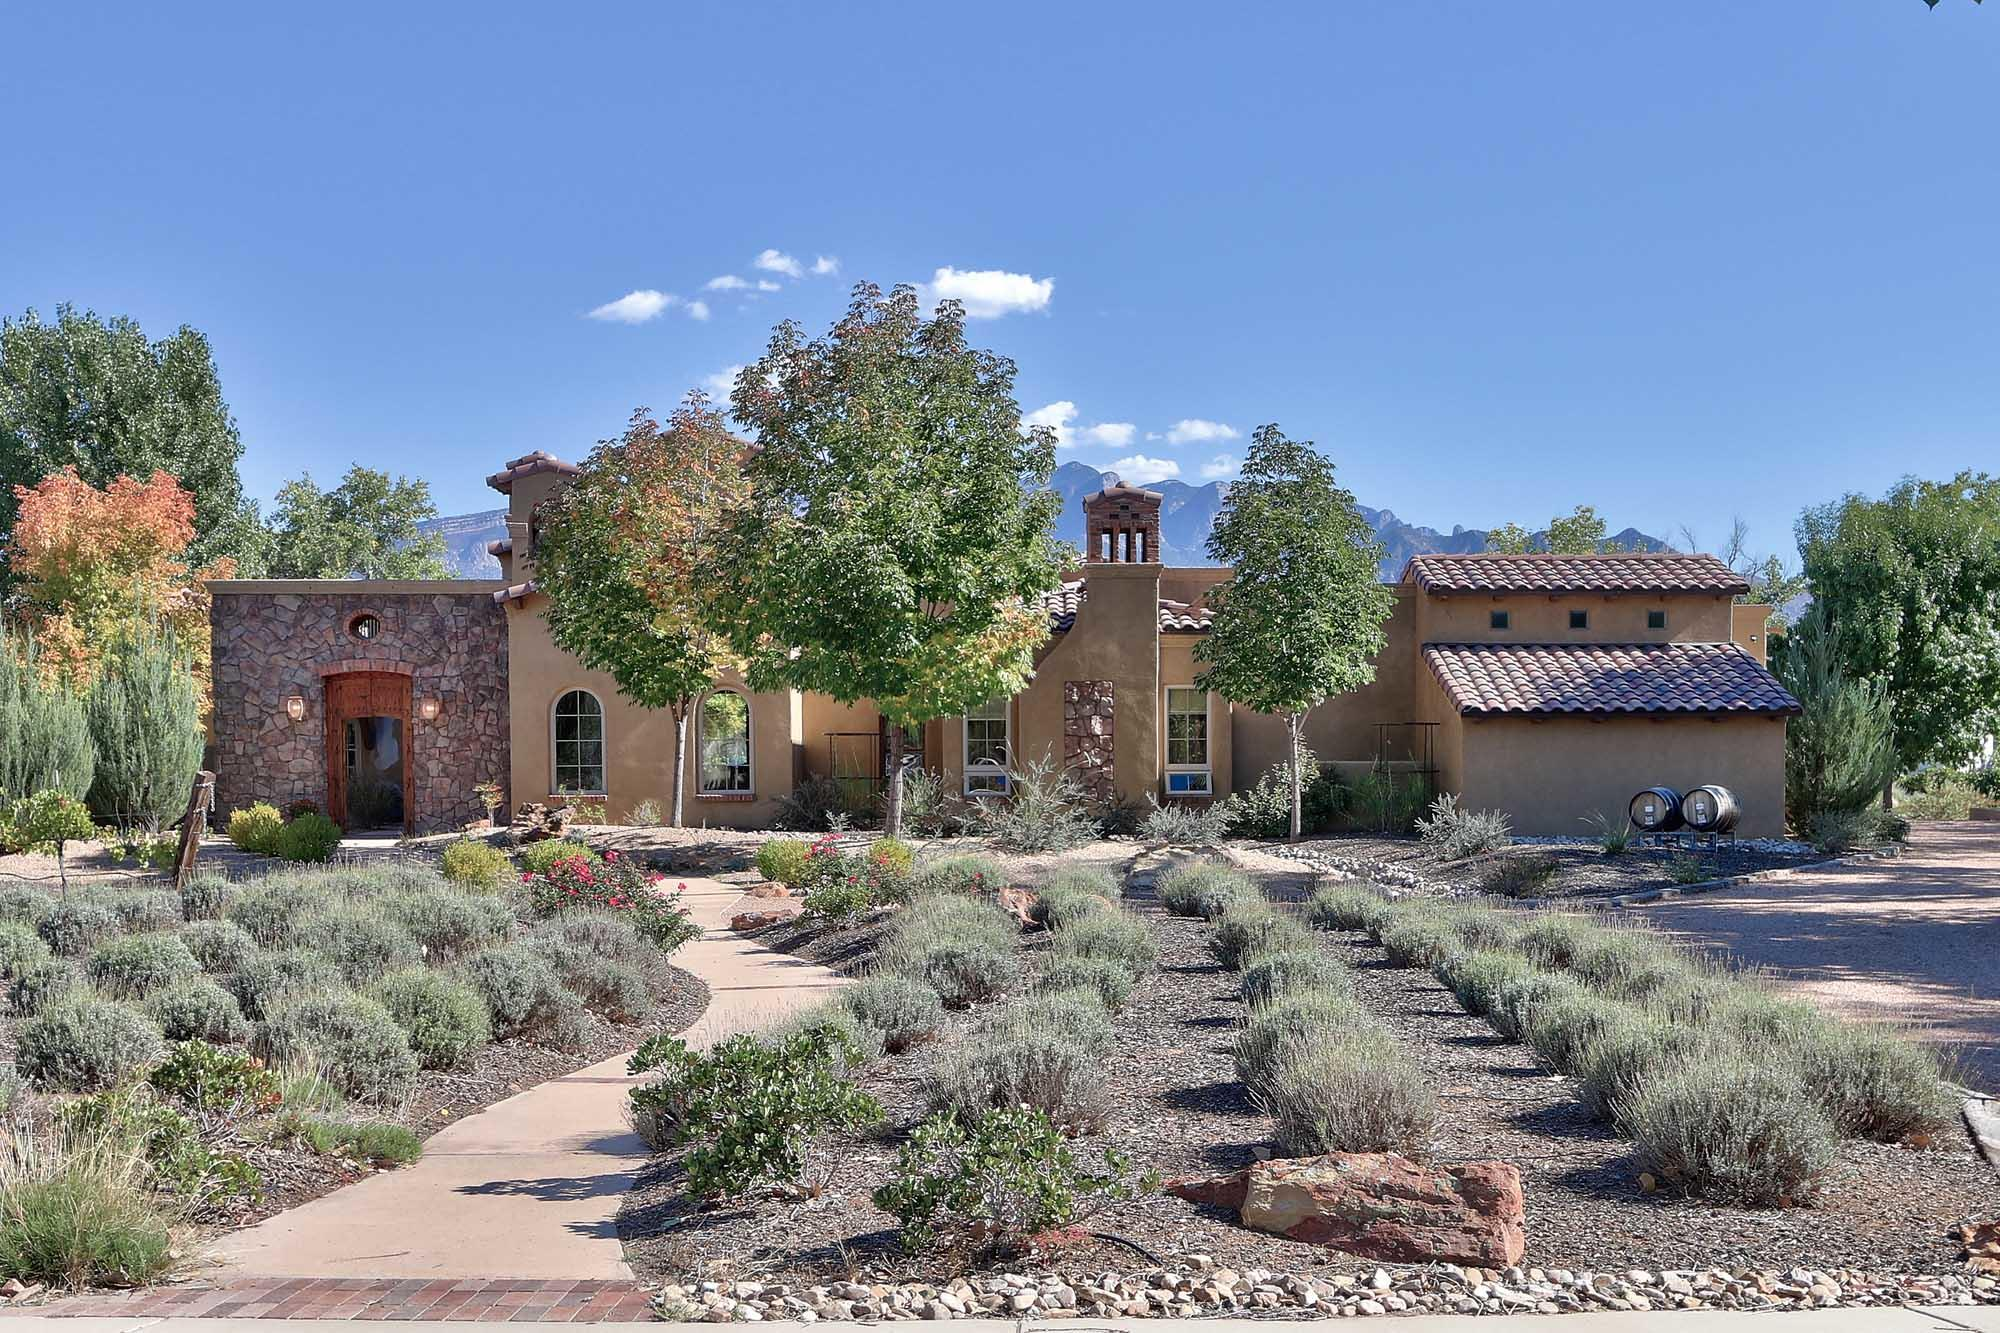 Exquisite home in in the Rio Grande Bosque. Set in it's own private vineyard designed to grow and produce your own wine. Hard to find 2.74 acre lot. Extraordinary Tuscan design loaded with  luxury features. Gorgeous gourmet kitchen features a lovely morning room. Picturesque views of the mountains and Bosque enhance most rooms and outdoor spaces.  Great Room features open truss ceilings and Cantera marble fireplace. Private, separate guest wing. Master suite features intimate patio and age in place elegant bath.  Incredible second story view deck for amazing sunset and mountain views.Located in a gated compound of high-end homes.  Convenient commute to both Santa Fe and Albuquerque.